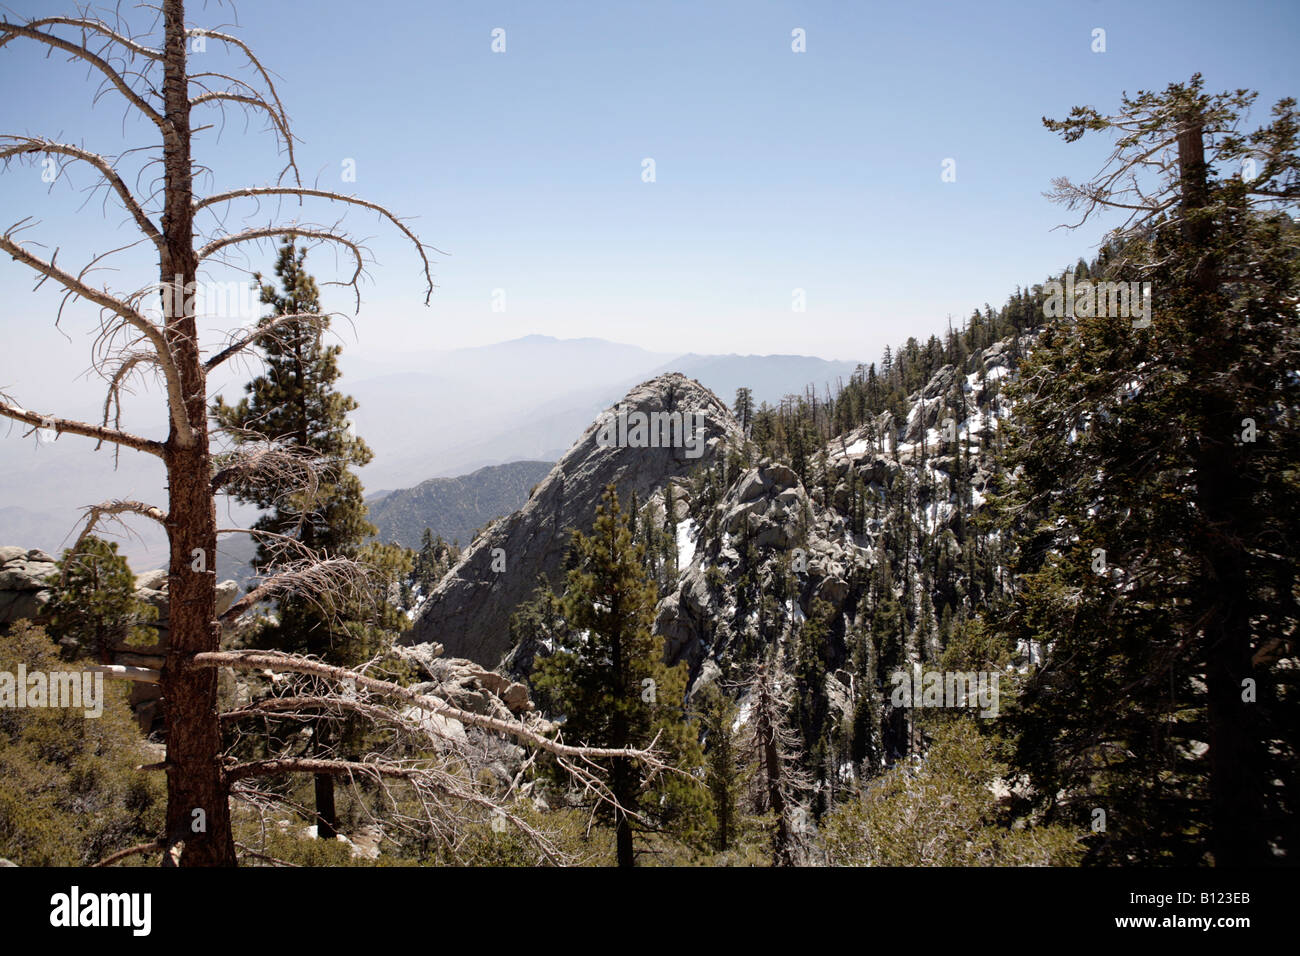 Mount San Jacinto State Park, at the top of the Palm Springs Aerial Tramway, California USA. - Stock Image